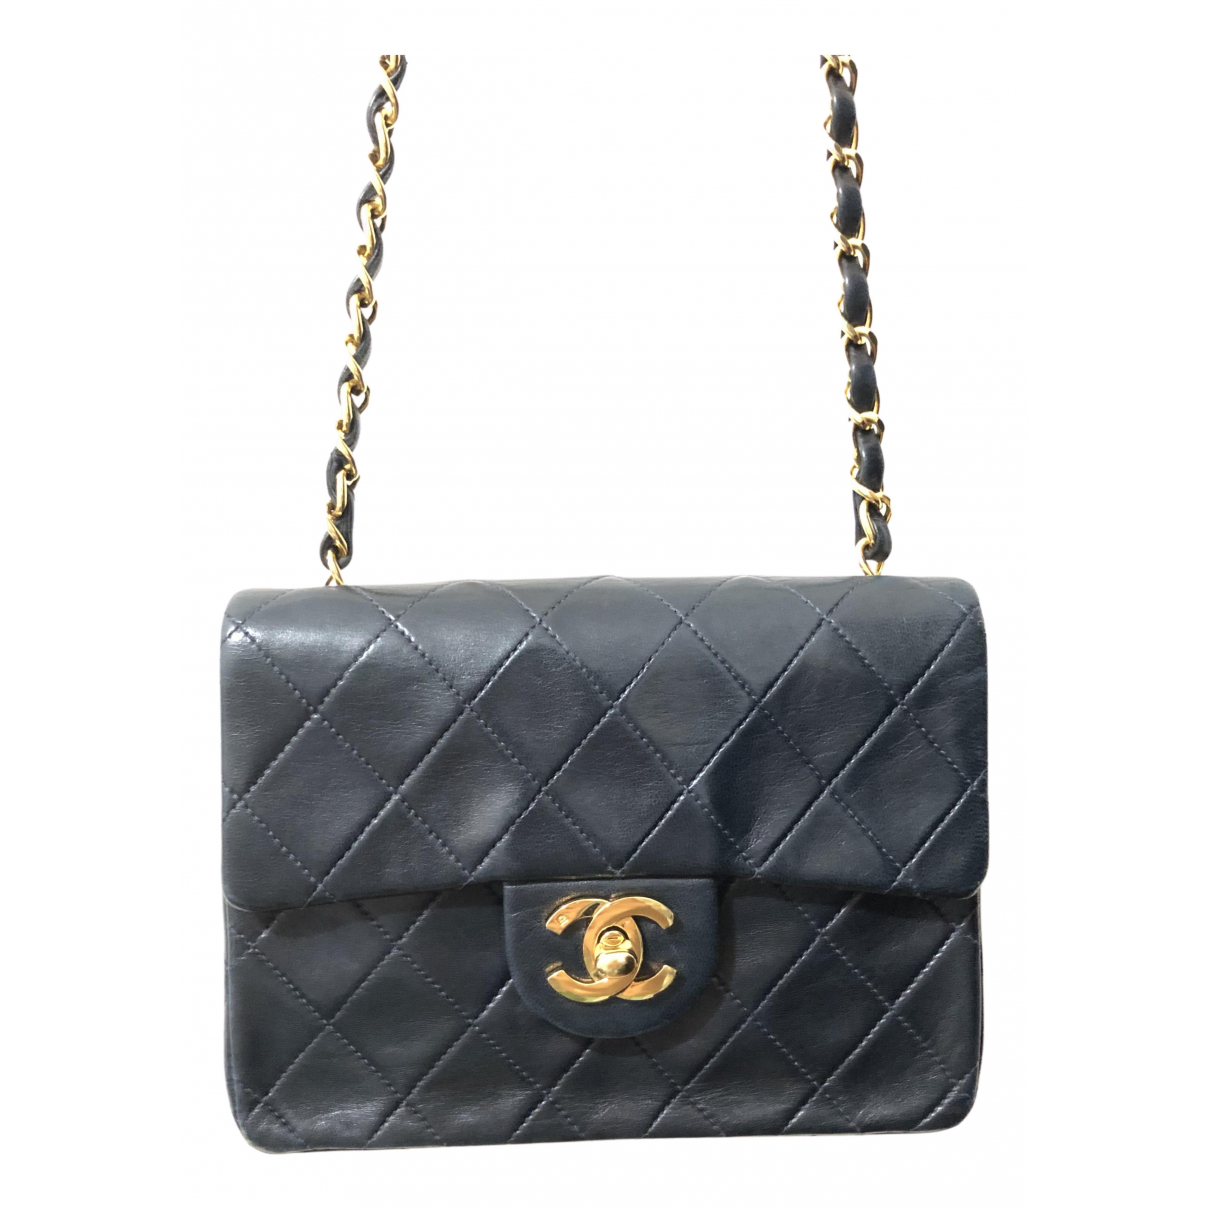 Chanel Timeless/Classique Navy Leather handbag for Women N